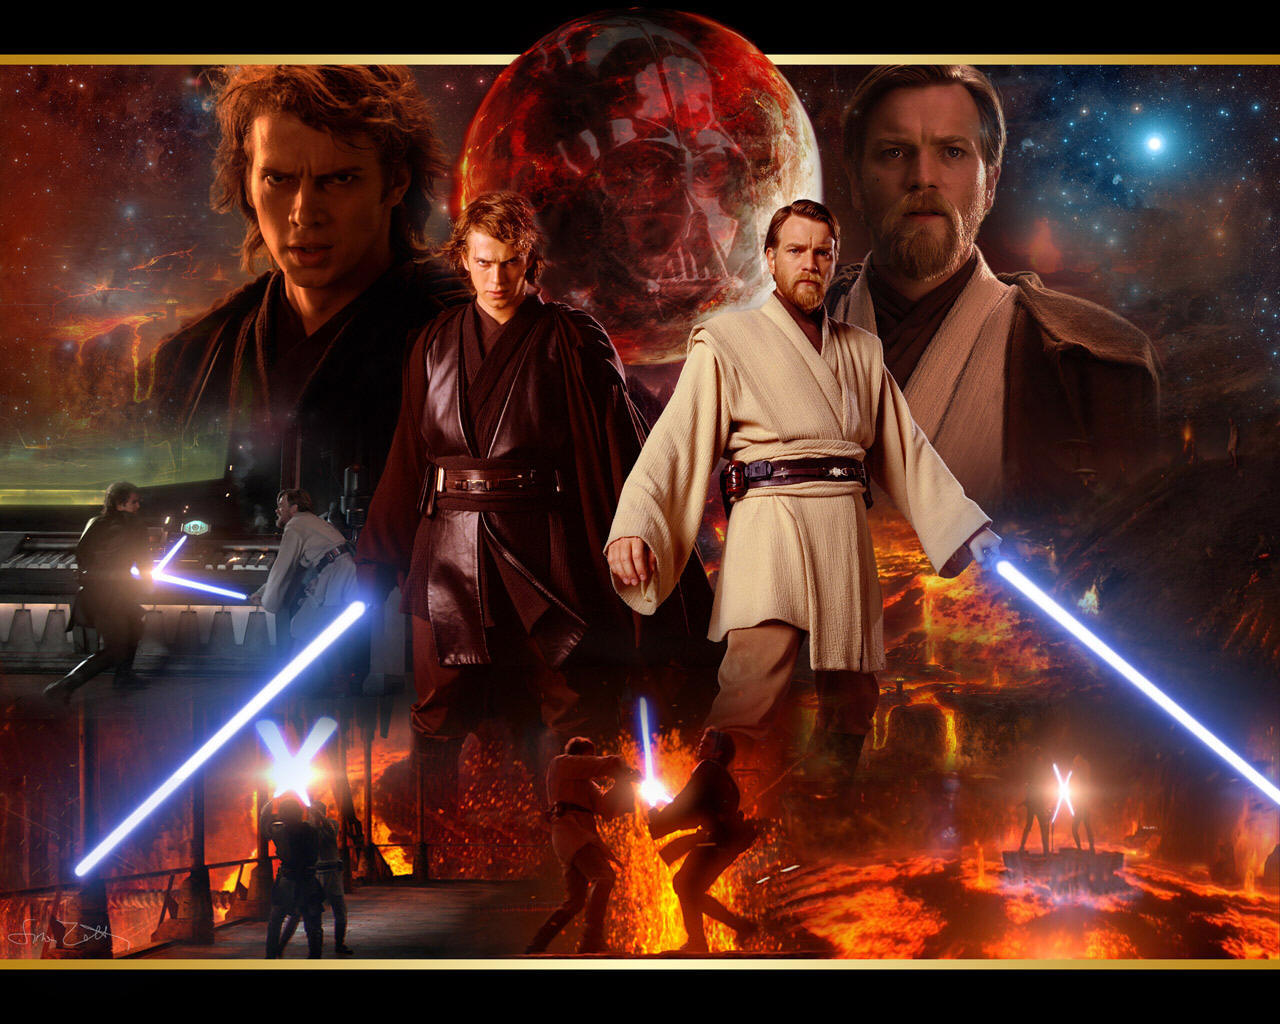 Anakin and Obi wan - Star Wars: Revenge